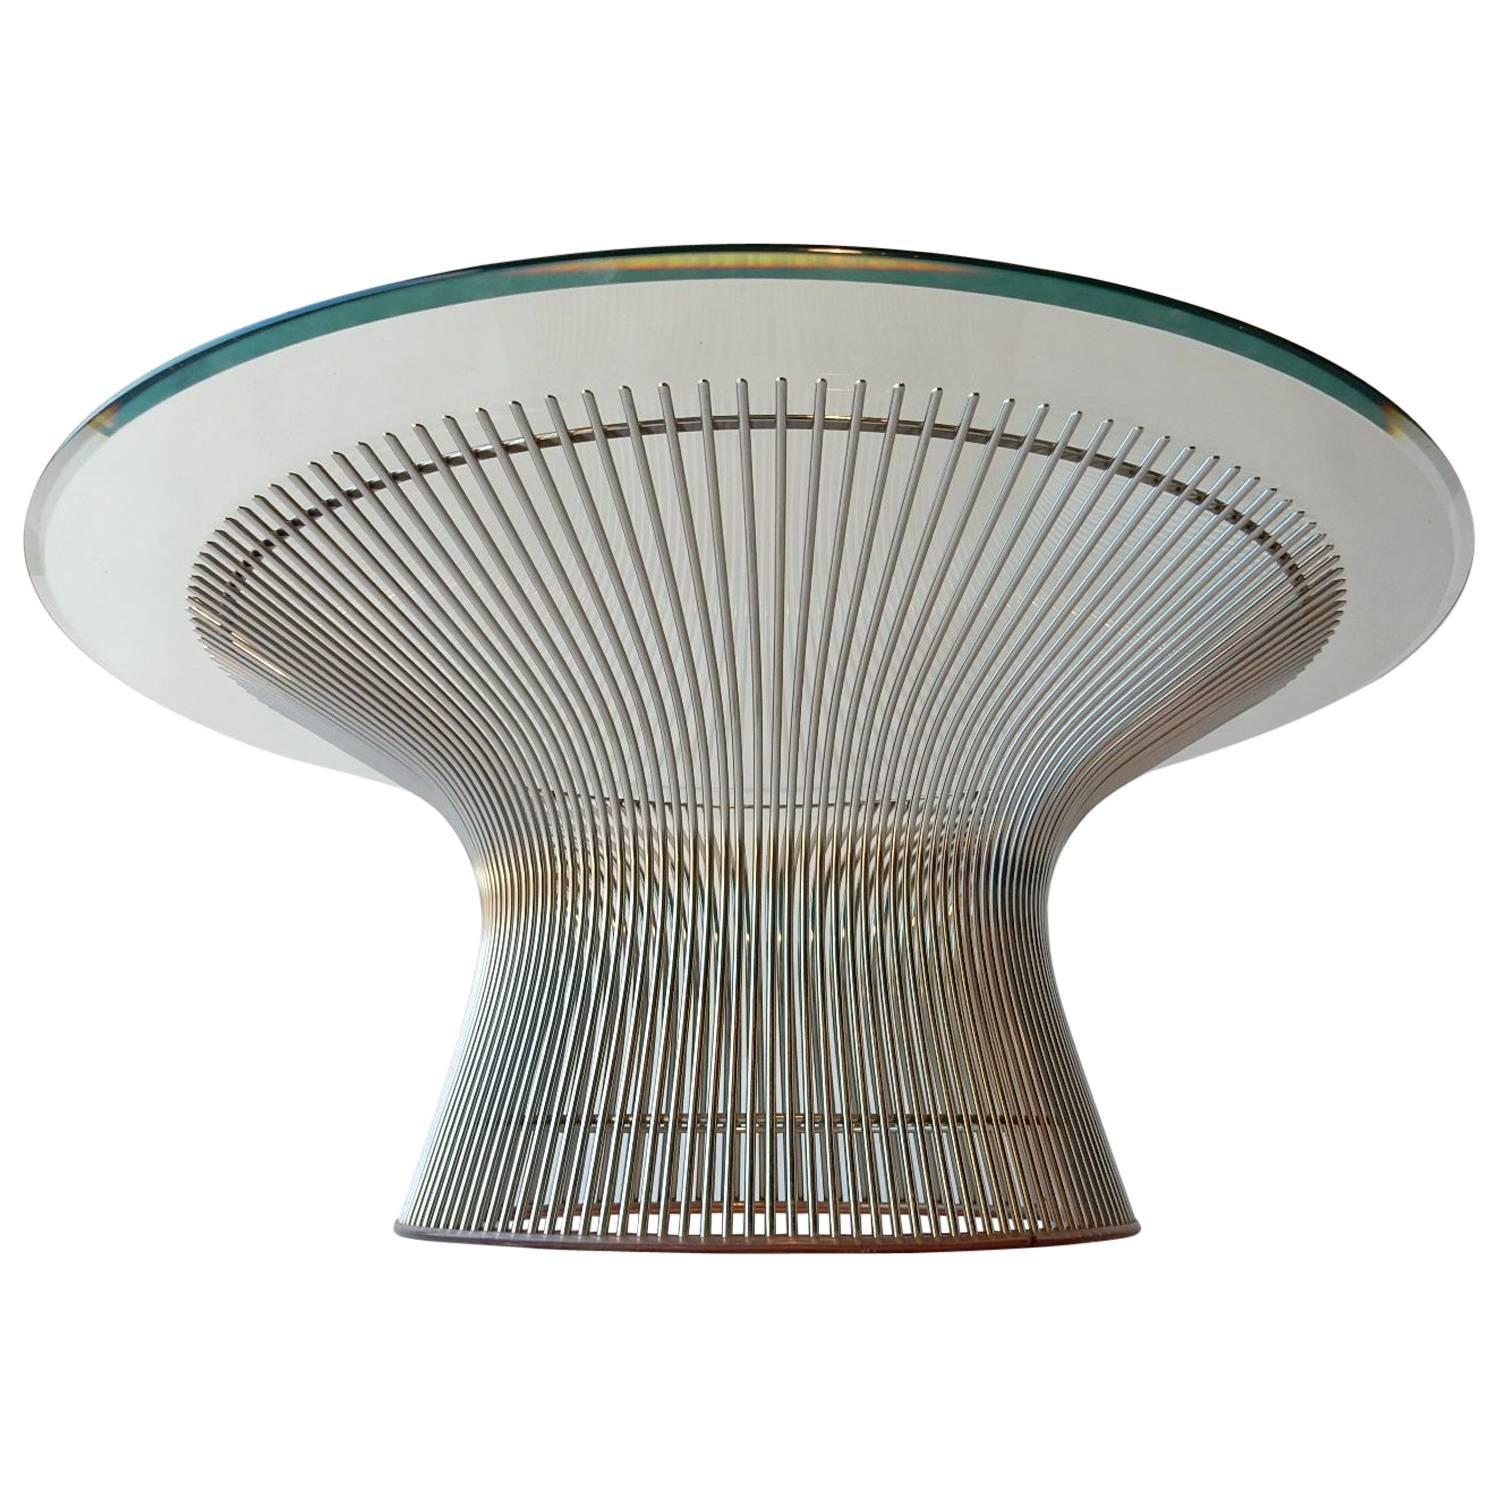 Warren platner tables 51 for sale at 1stdibs warren platner for knoll chrome wire coffee table mid century modern greentooth Gallery